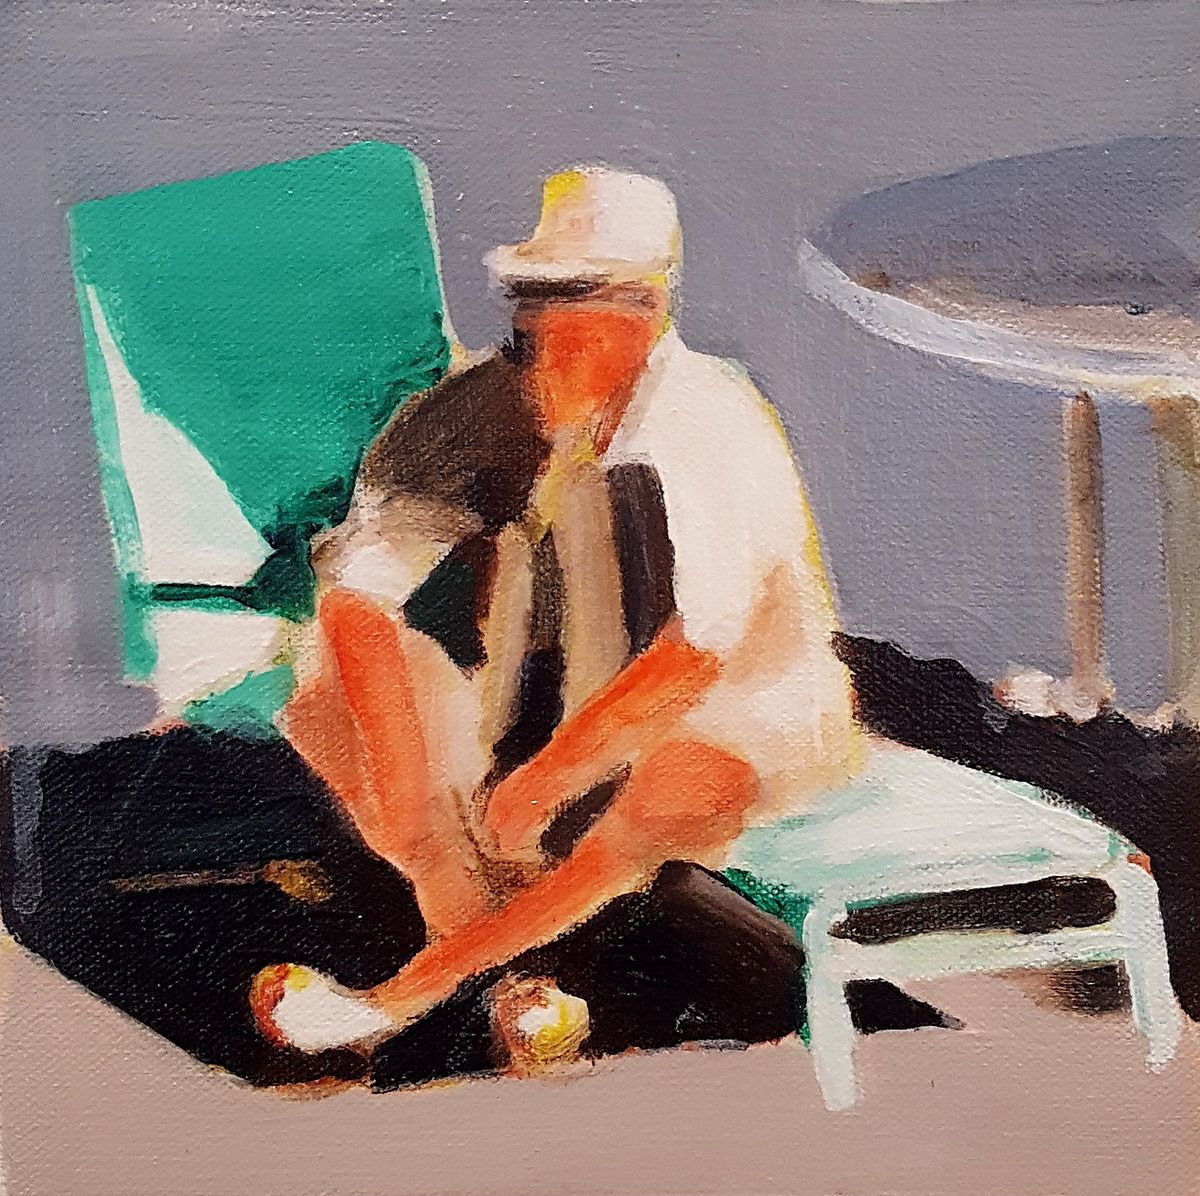 mark mann painting of man sitting on pool chair